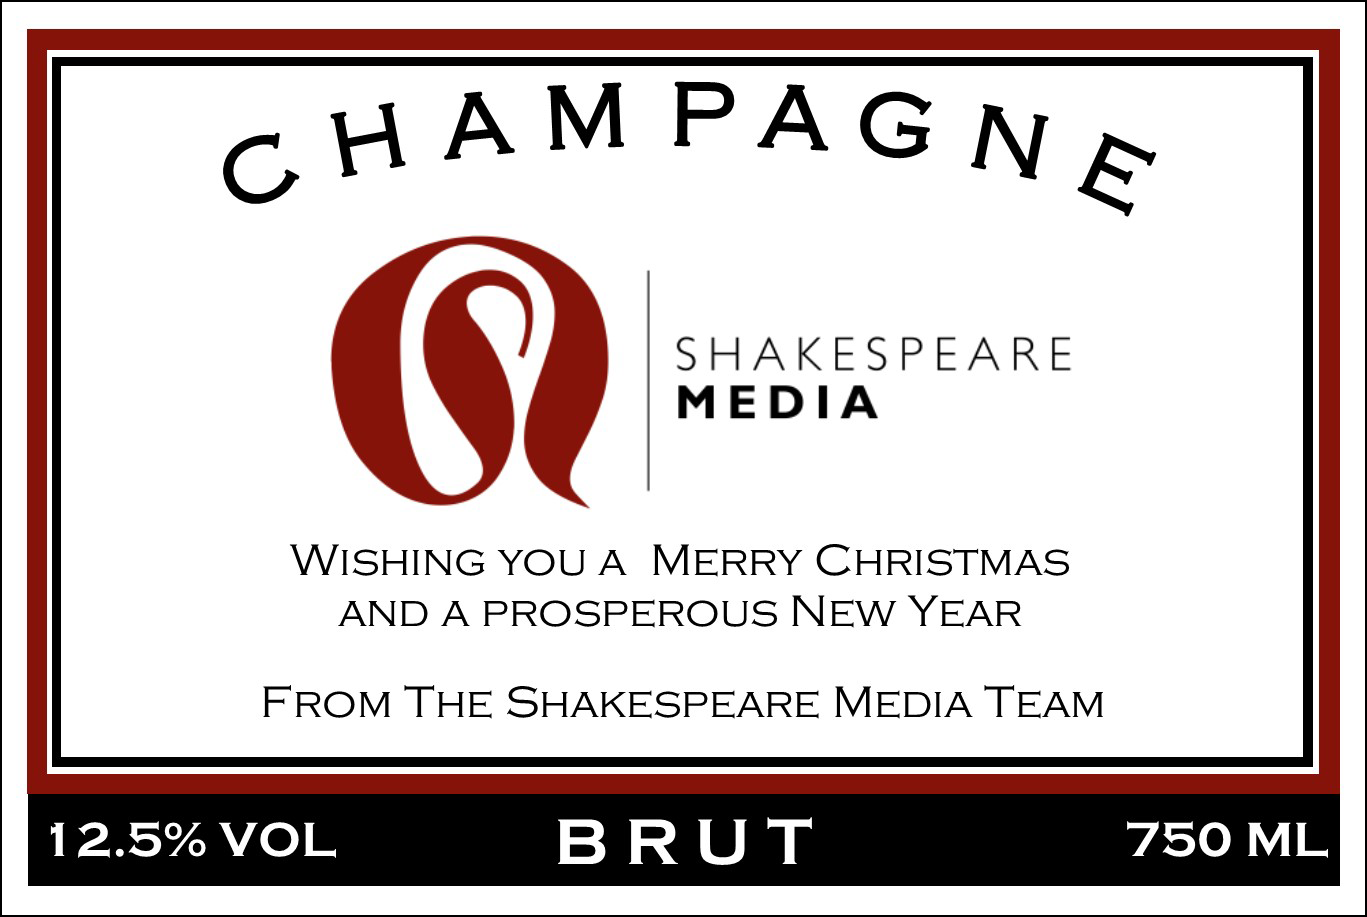 Shakespeare Media Branded Champagne